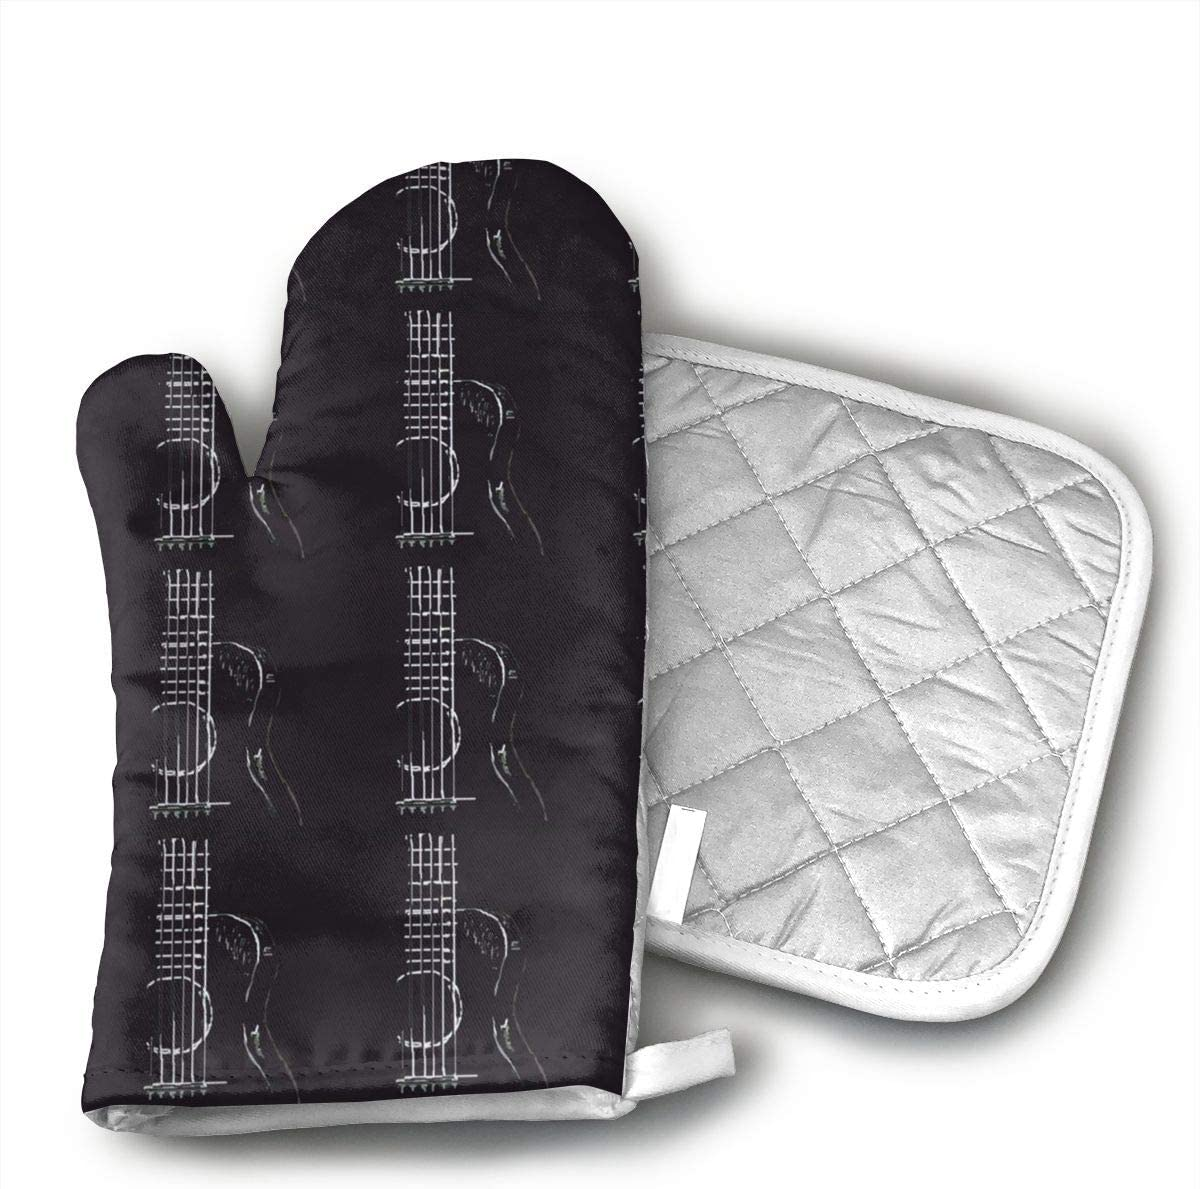 Jiqnajn6 Music Accoustic Guitar Oven Mitts,Heat Resistant Oven Gloves, Safe Cooking Baking, Grilling, Barbecue, Machine Washable,Pot Holders.